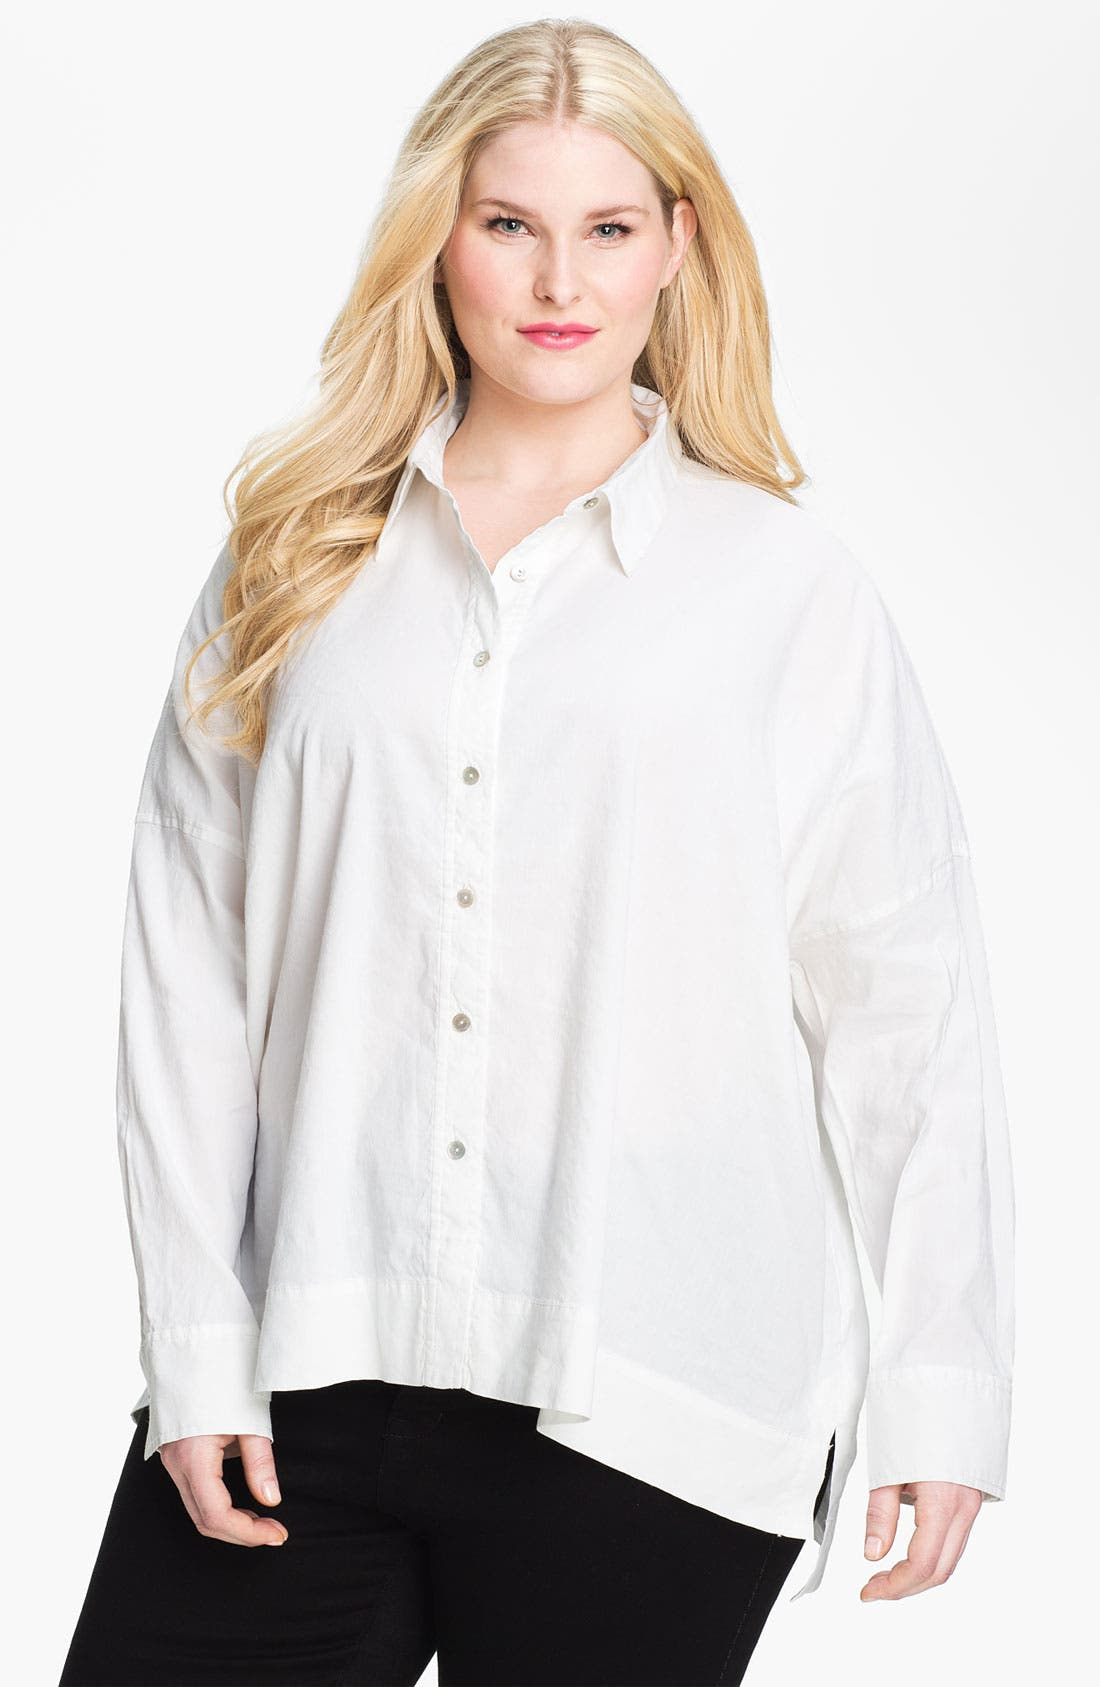 Alternate Image 1 Selected - Eileen Fisher Button Up Shirt (Plus Size)